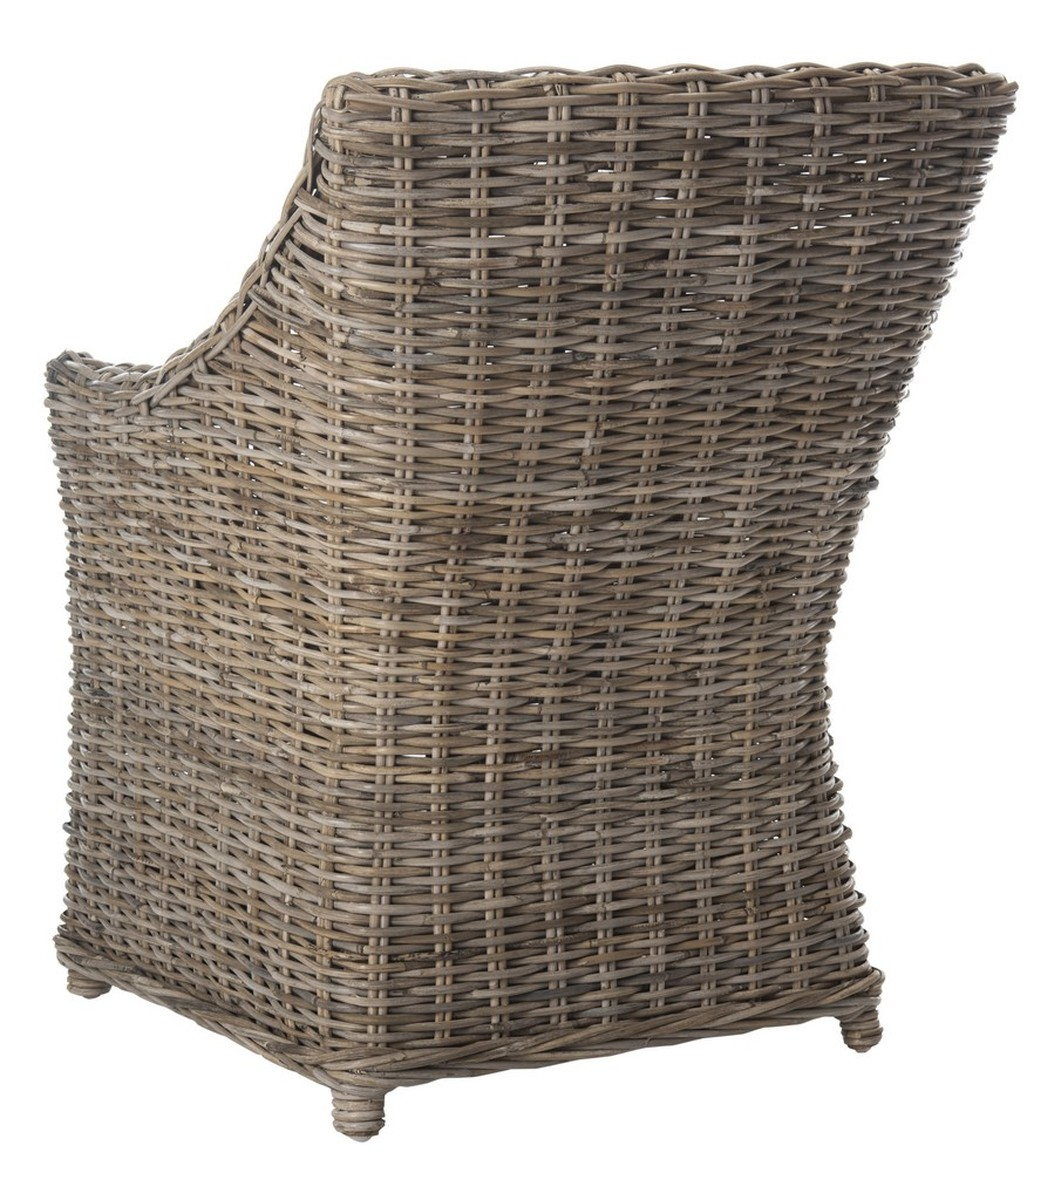 Fox6505a Accent Chairs Furniture By Safavieh